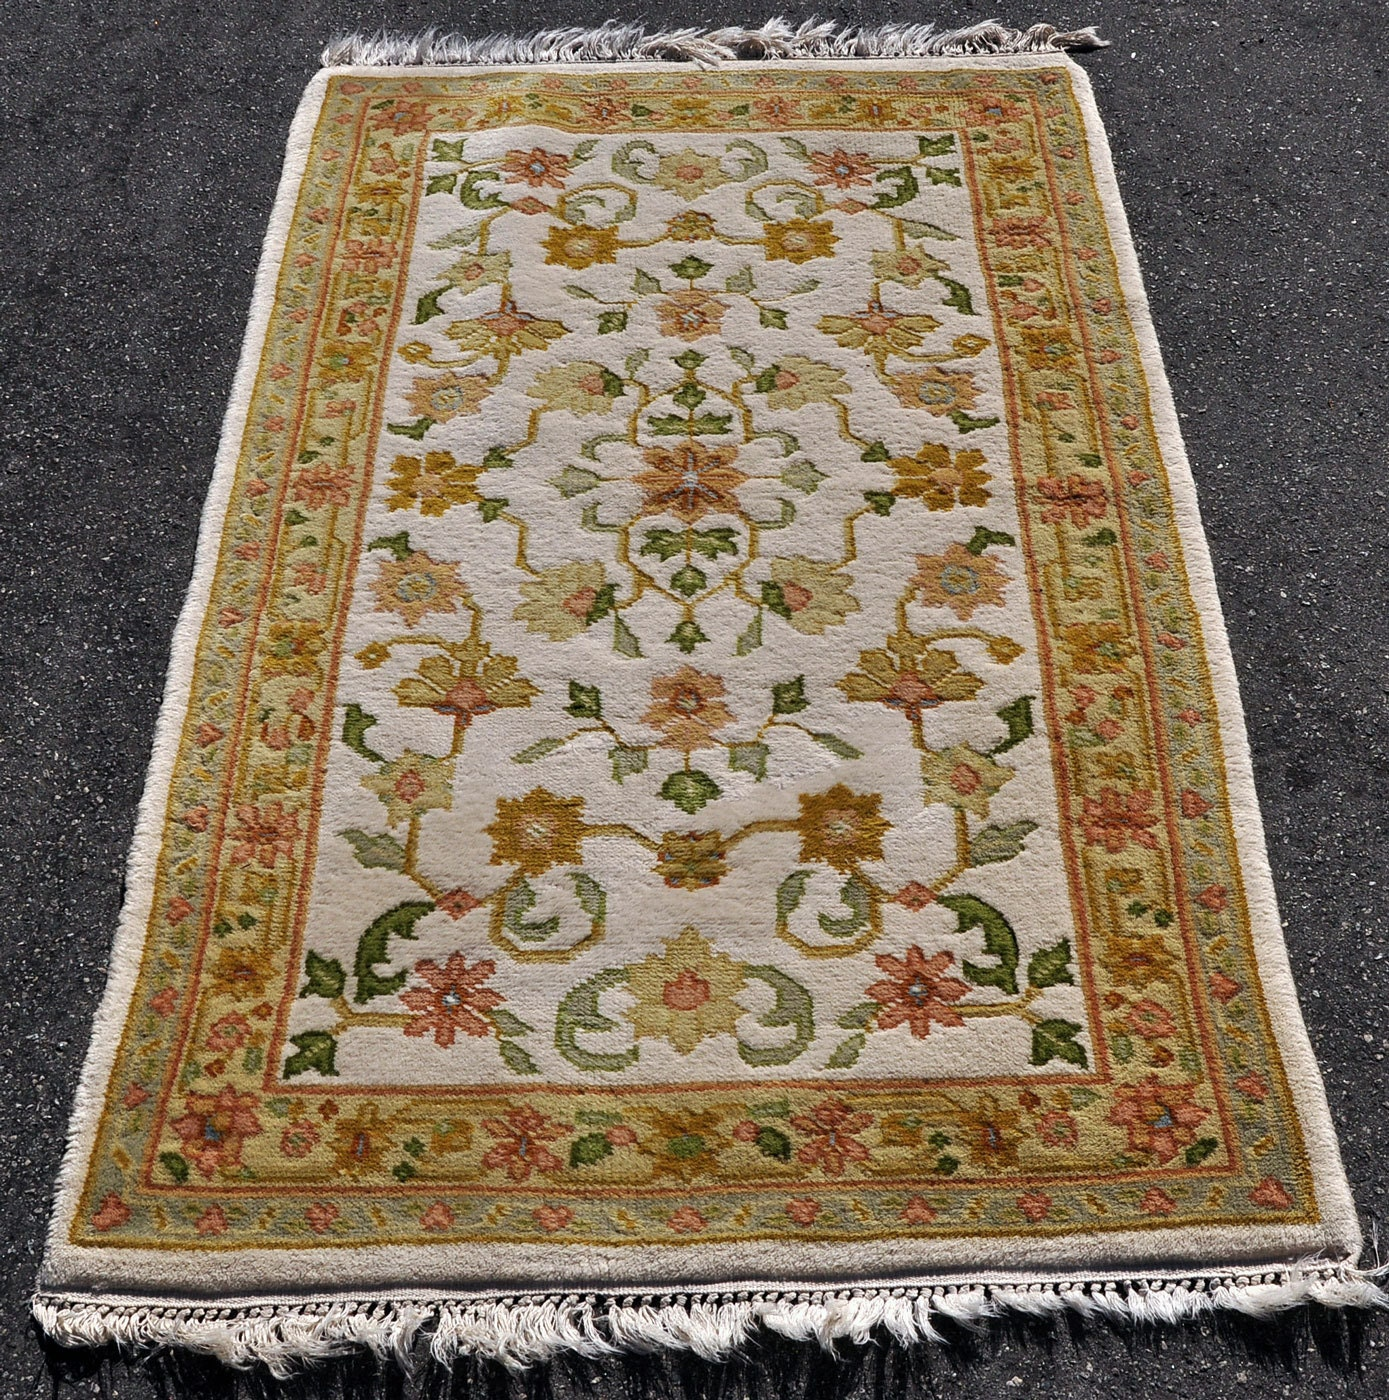 Handmade arts and crafts style rug 5 ft 6 in by 3 ft for Arts and crafts style rug